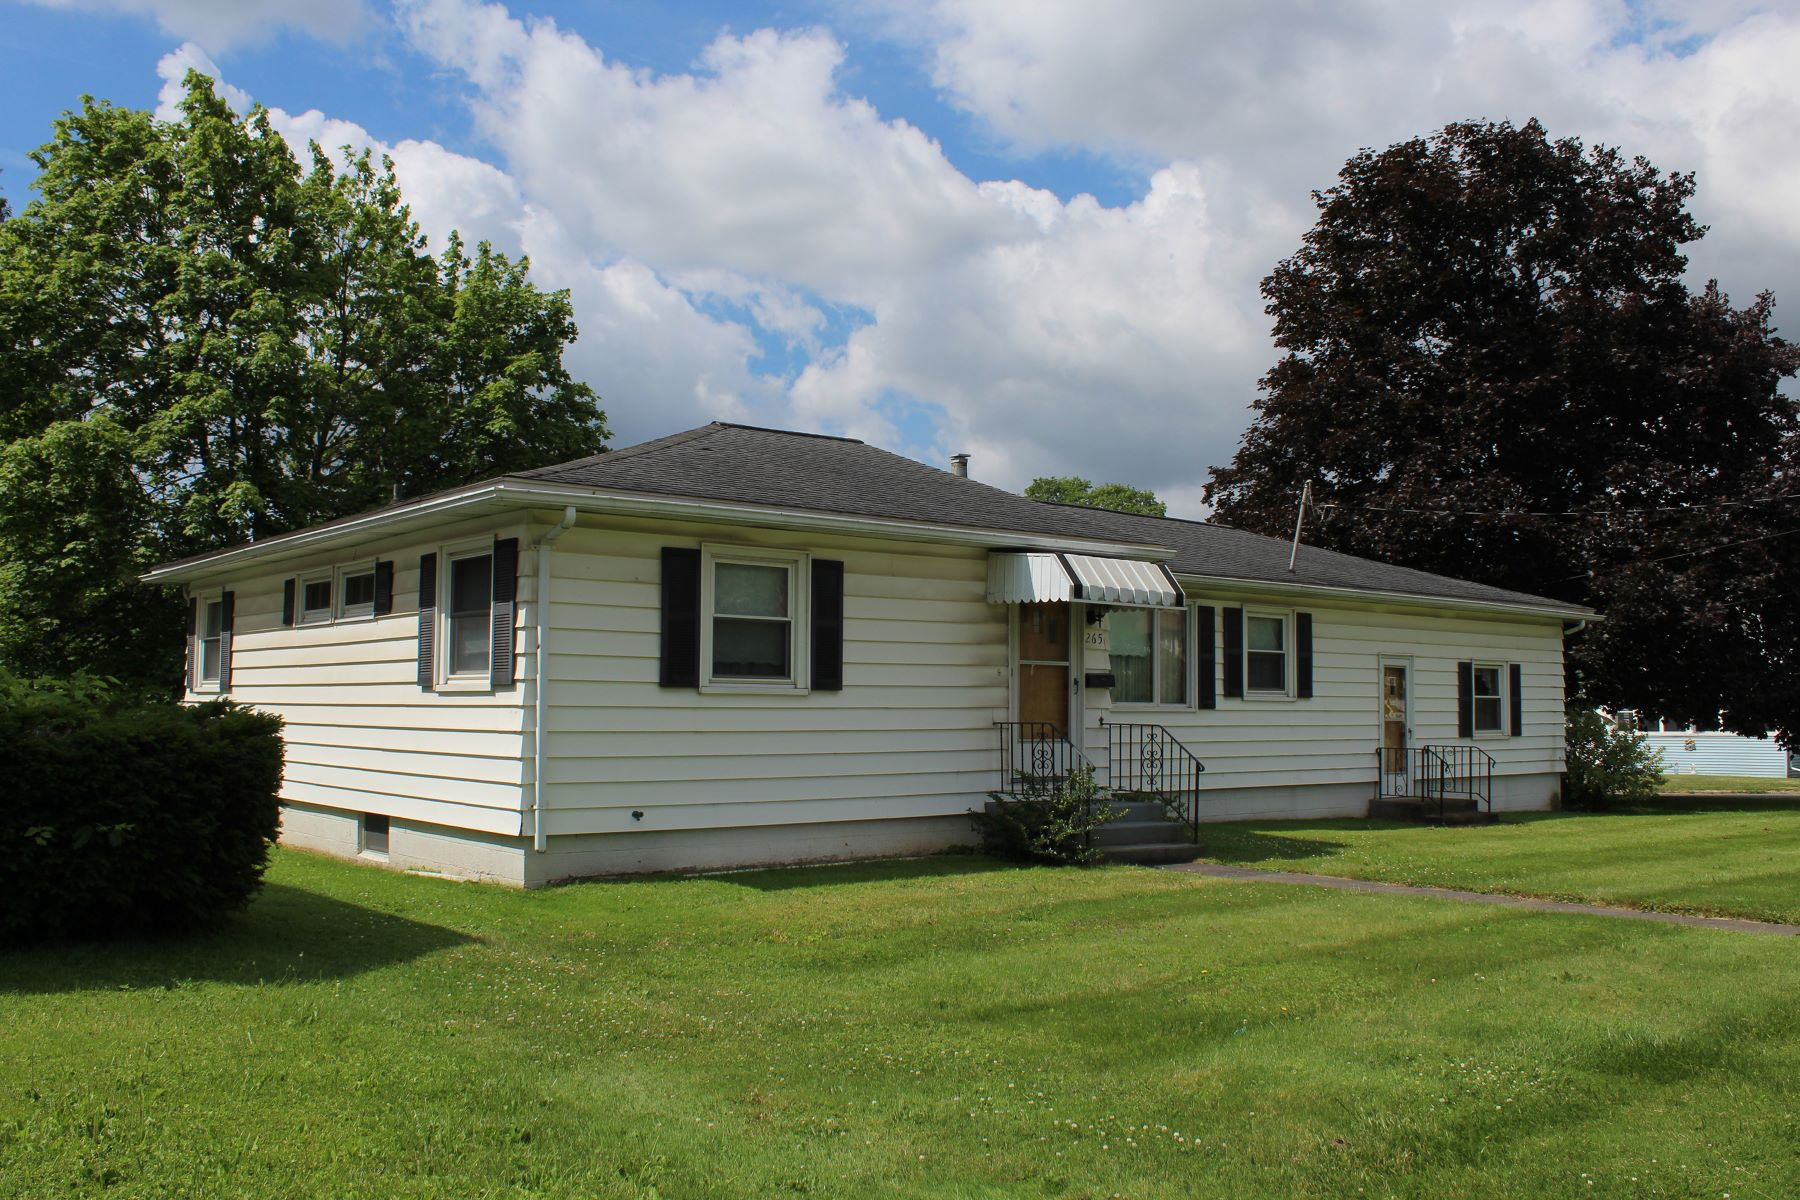 Single Family Homes for Active at The House on the Corner 265 West North Street Geneva, New York 14456 United States